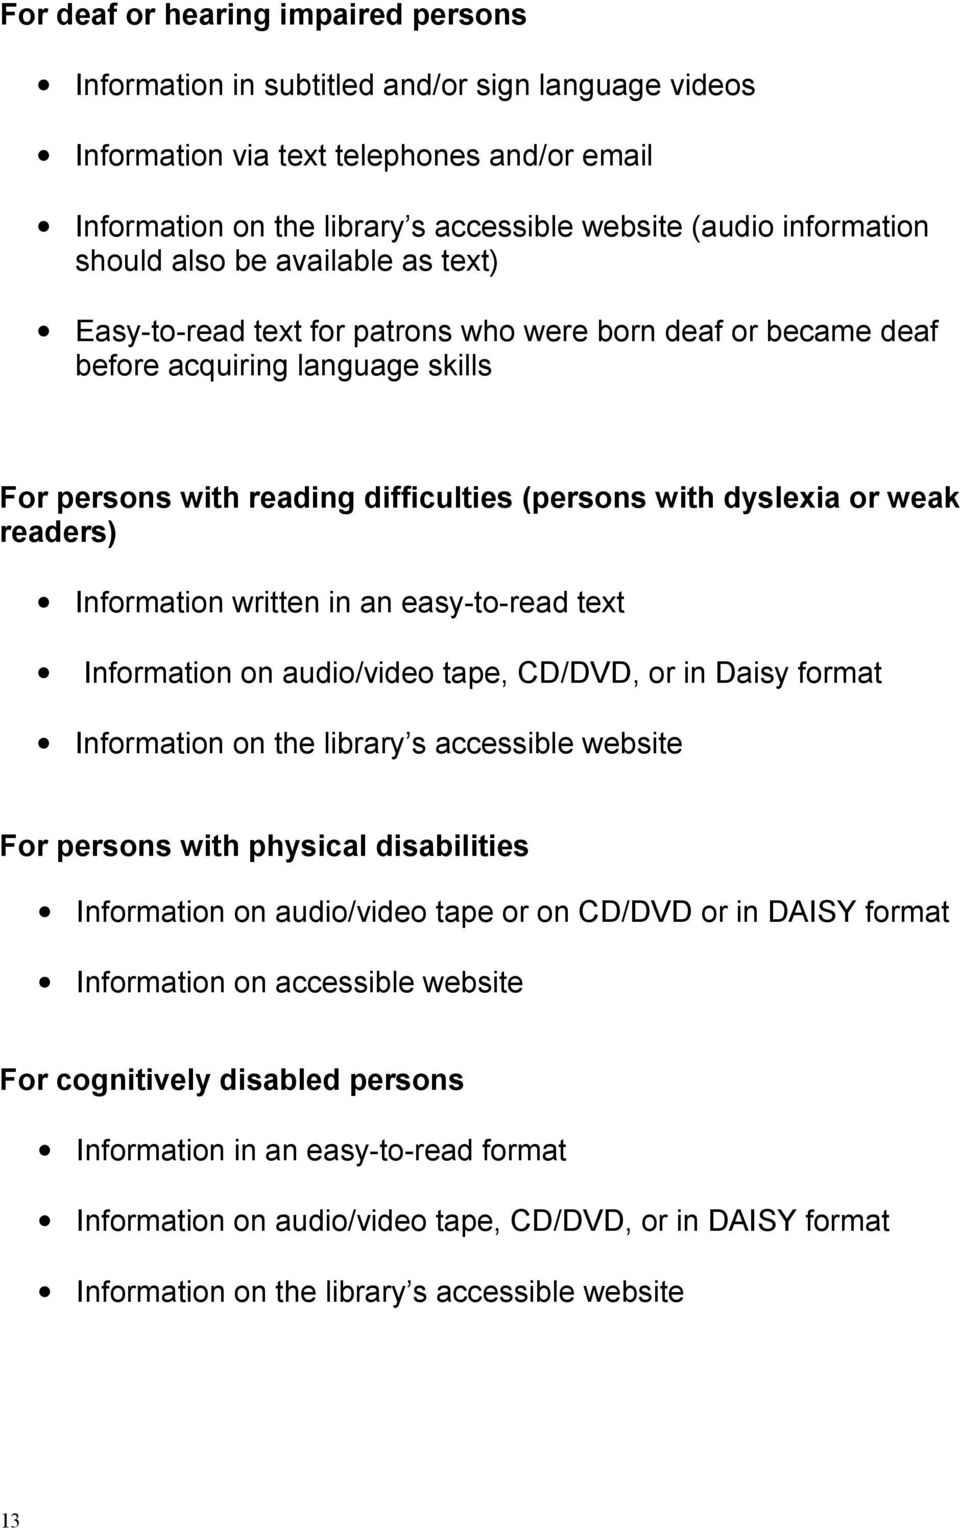 dyslexia or weak readers) Information written in an easy-to-read text Information on audio/video tape, CD/DVD, or in Daisy format Information on the library s accessible website For persons with